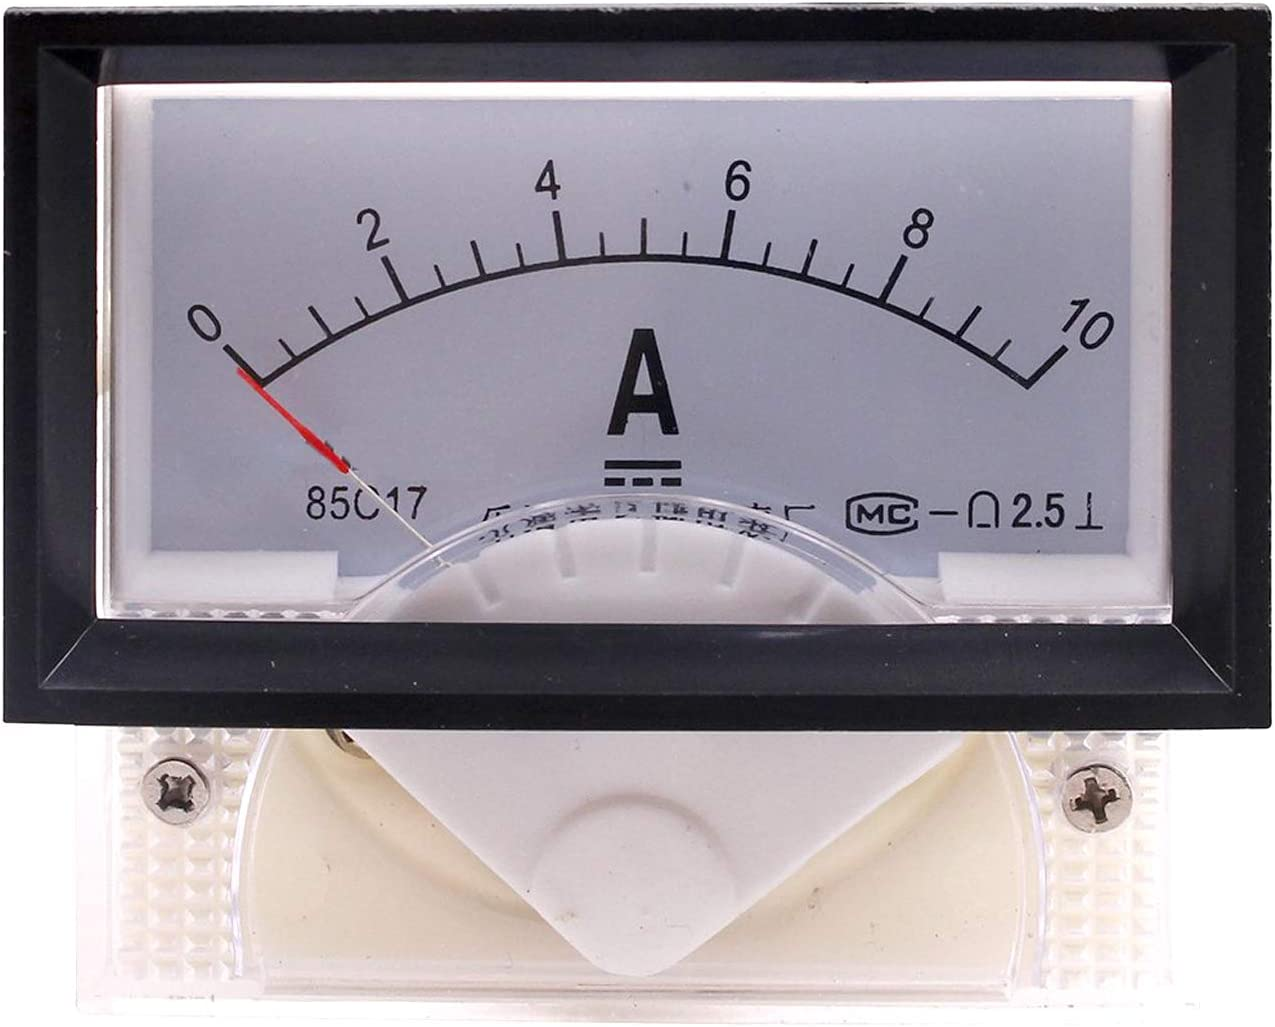 X-DREE DC 0-30A Ammeter high performance Panel Meter w essential Installing Parts 298-17-85-211